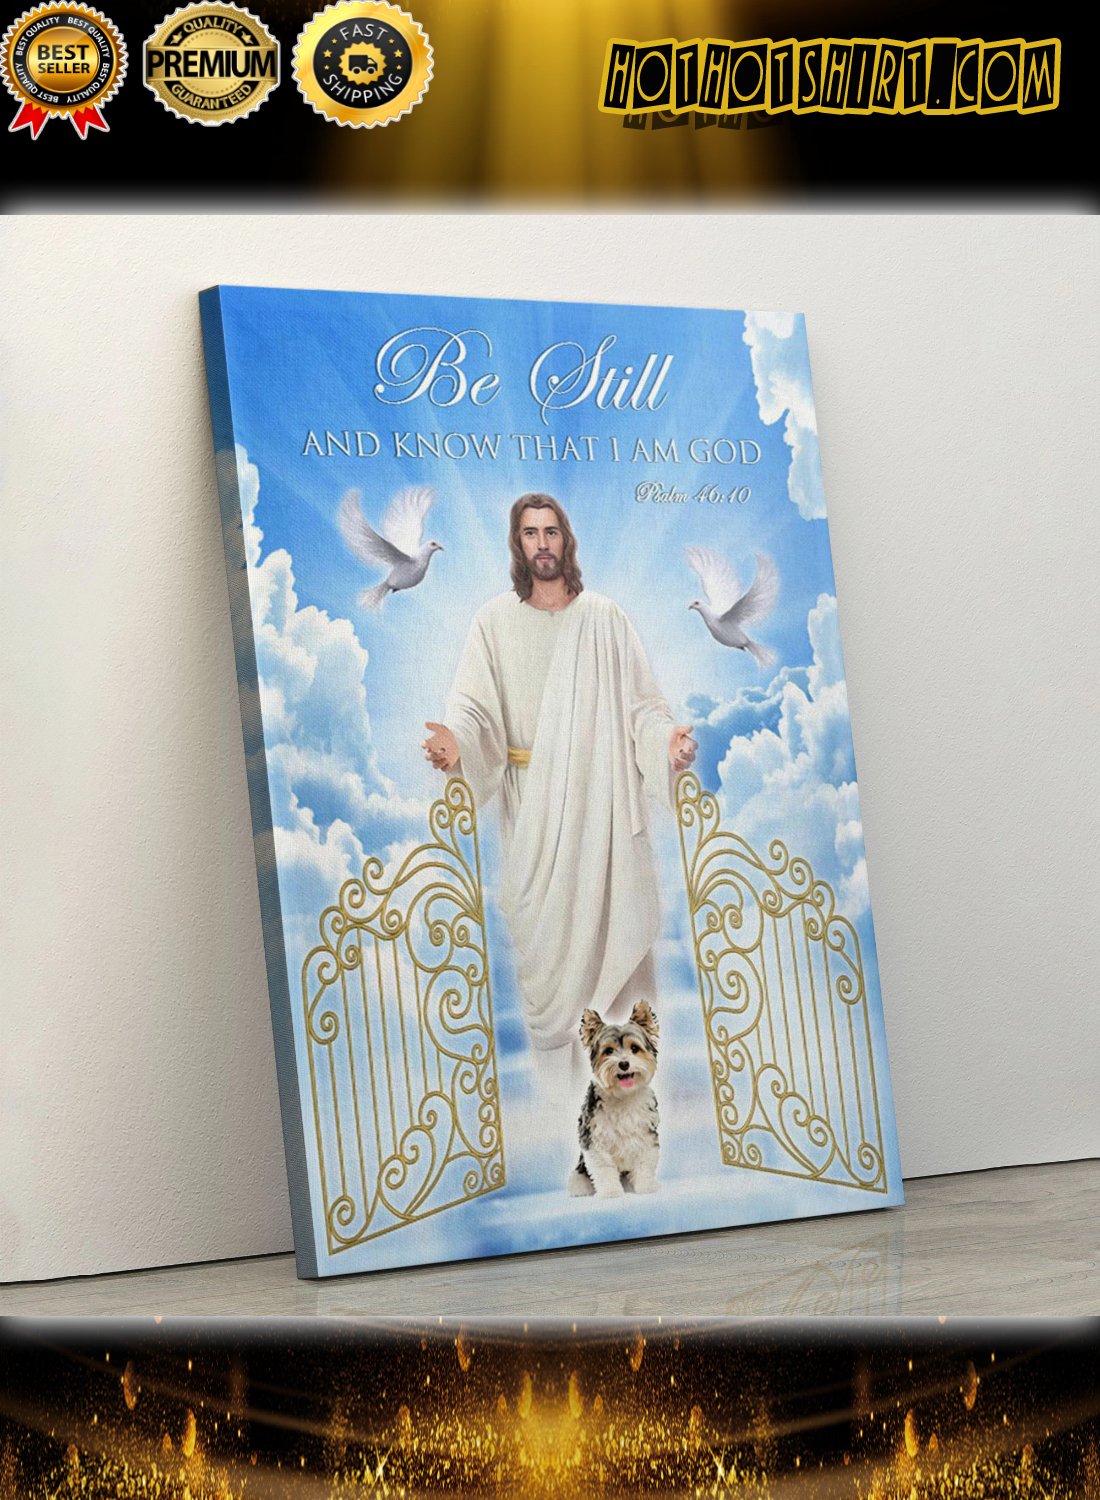 Yorkshire Terrier Be still and know that i am god poster 2